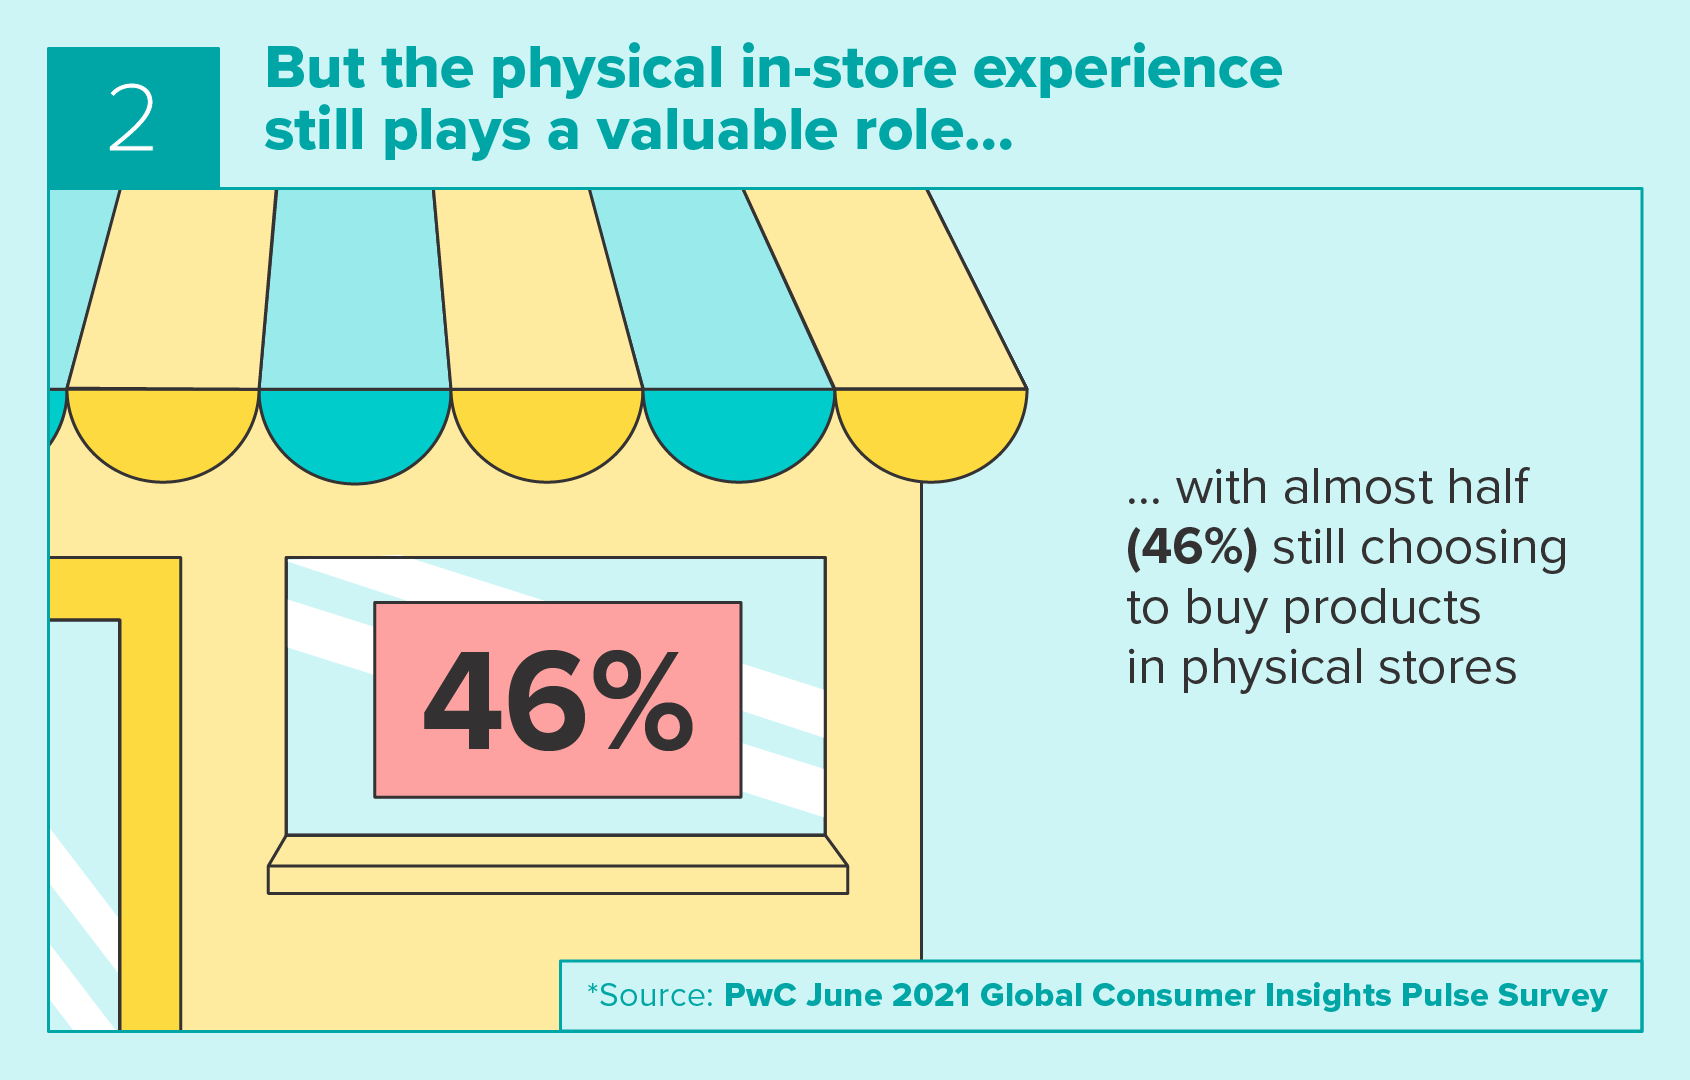 Physical store is still valuable